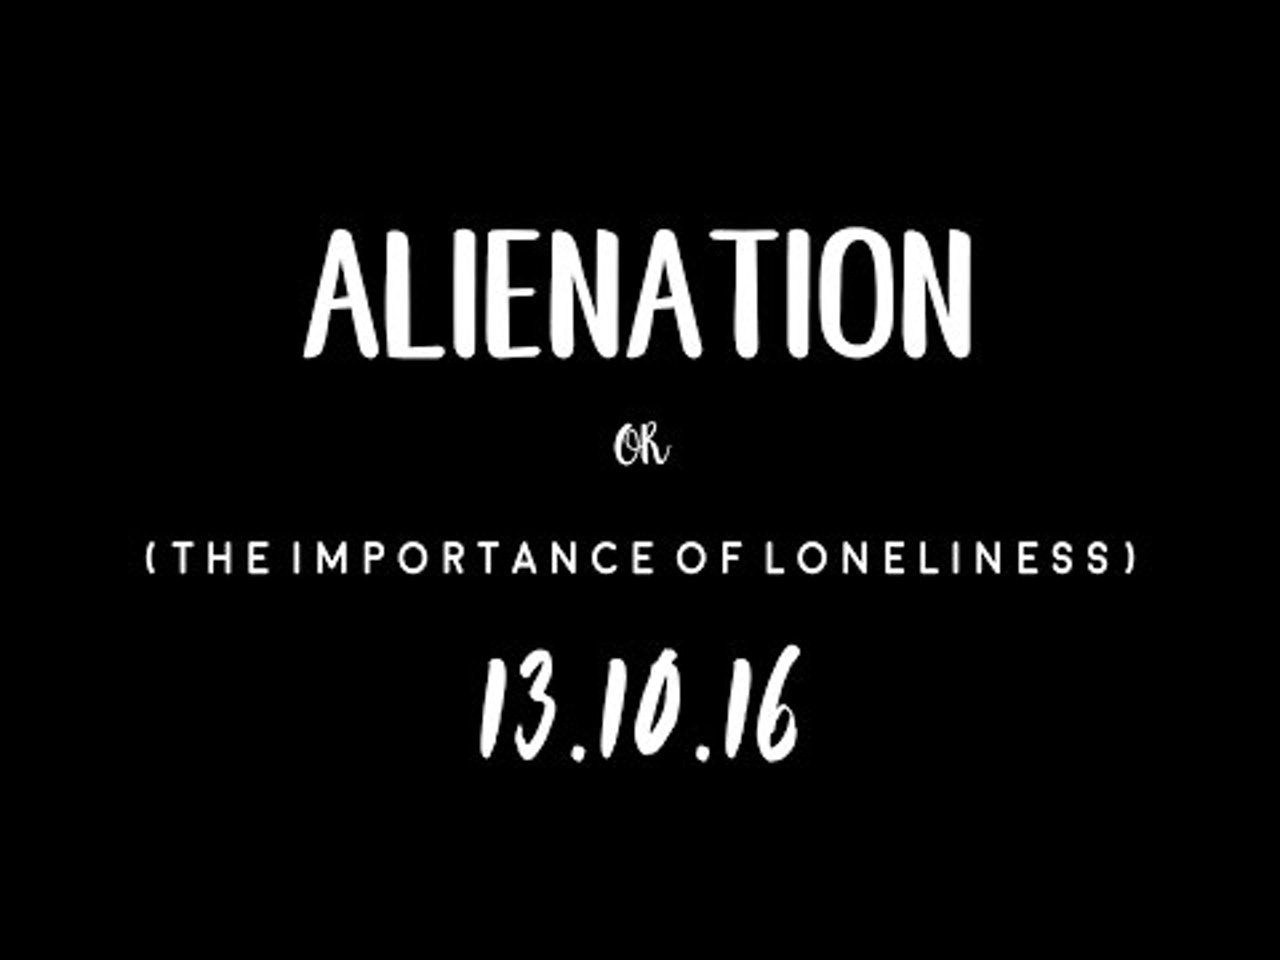 Alienation or (The Importance of Loneliness) - Trailer